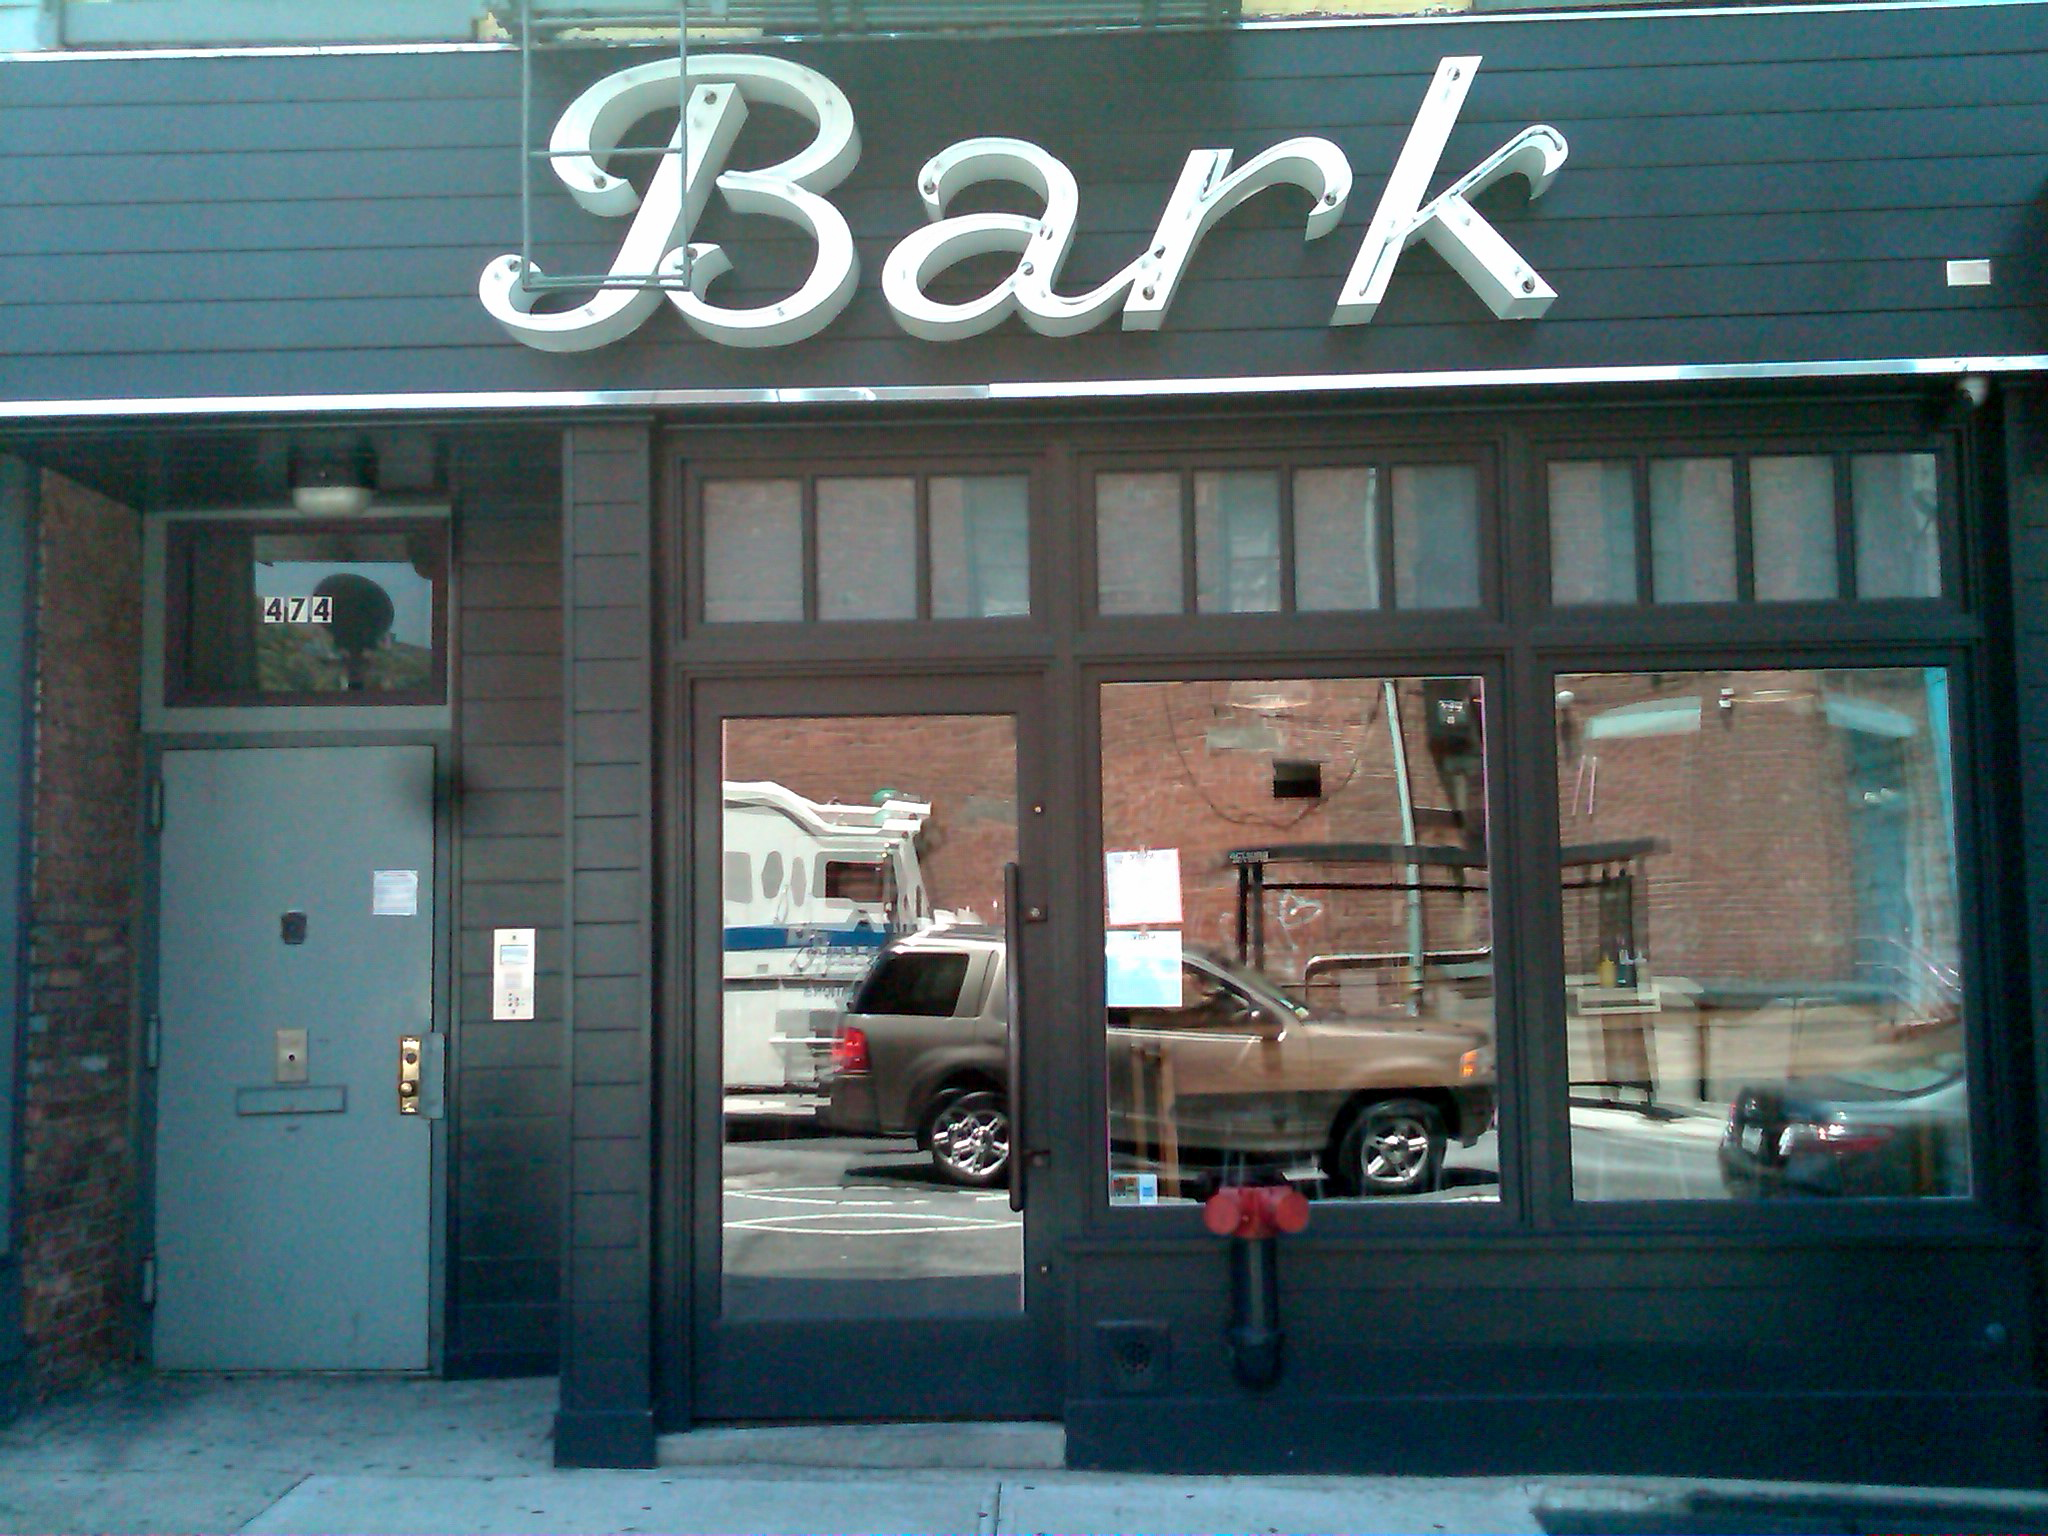 Bark serves amazing veggie dogs and fries!